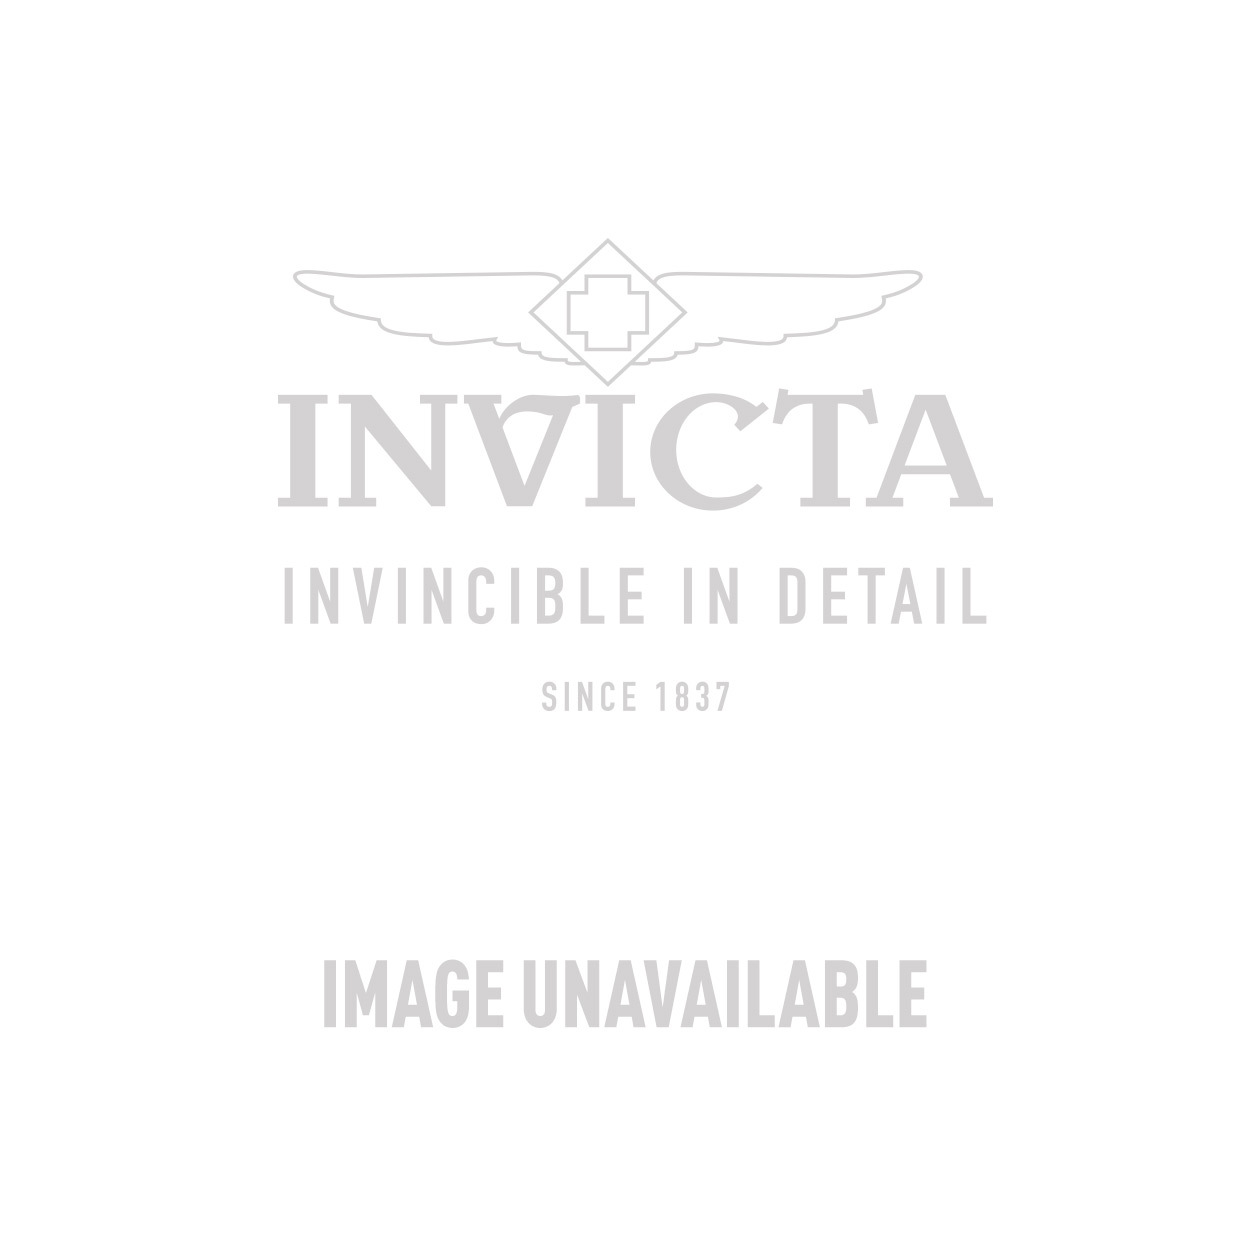 Invicta Angel Swiss Movement Quartz Watch - Stainless Steel case with Blue tone Leather band - Model 18401